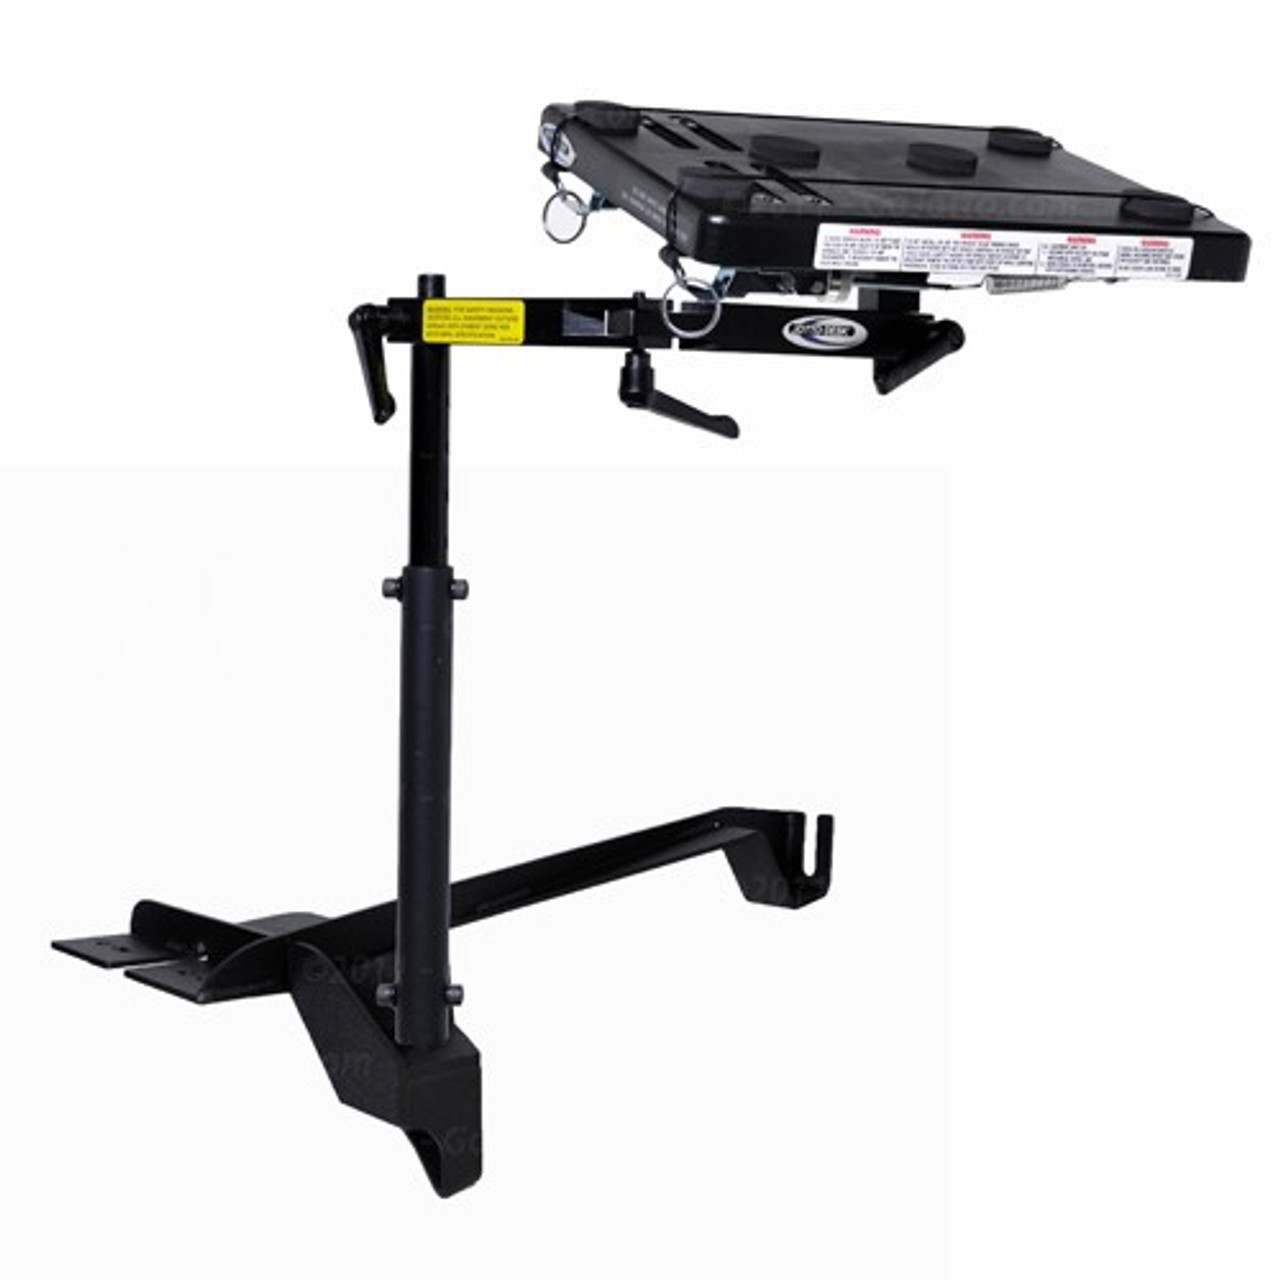 Durango Laptop Mount by Jotto Desk 2007-2018